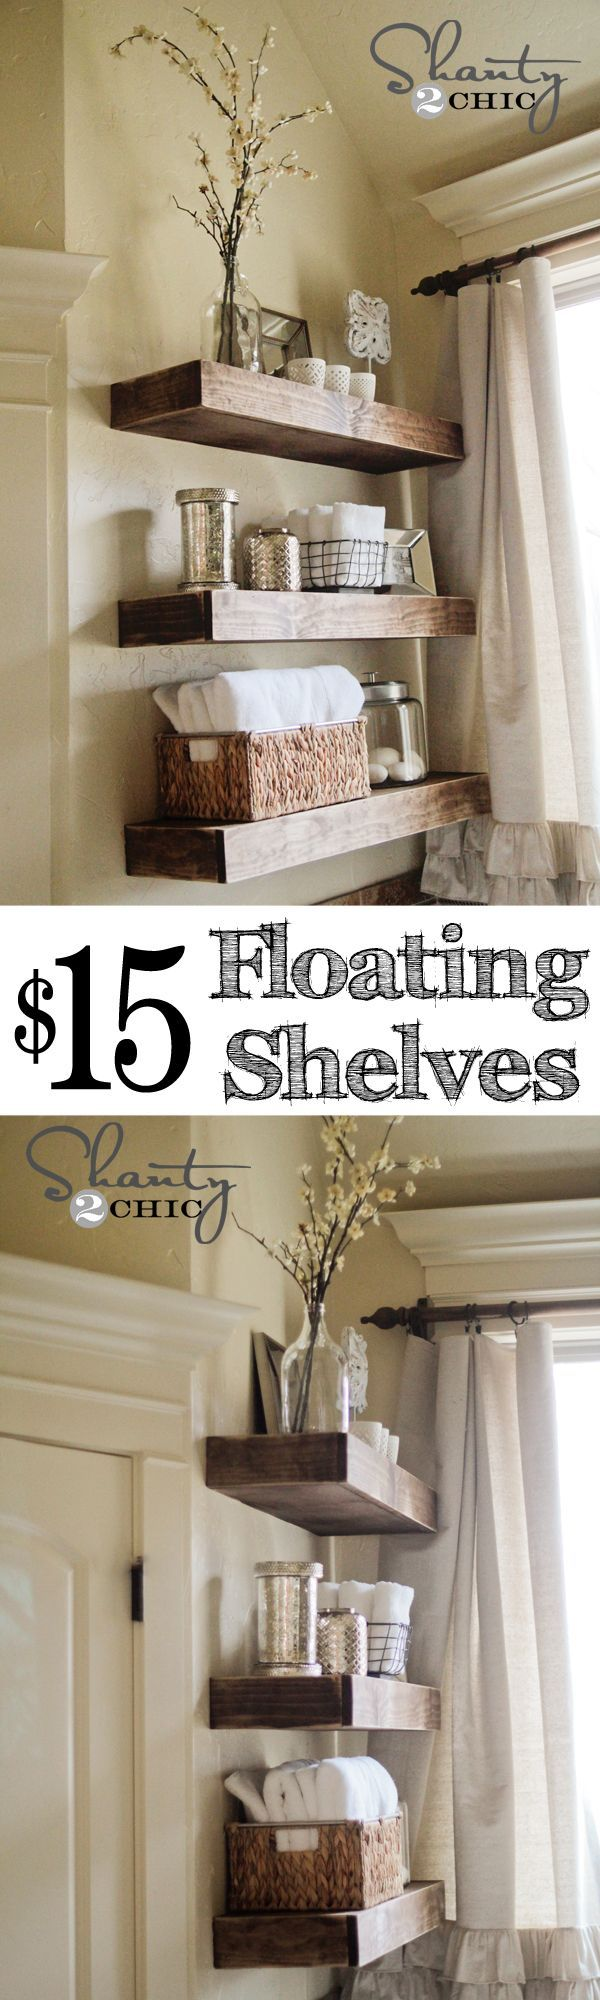 Best 25+ Rustic floating shelves ideas on Pinterest